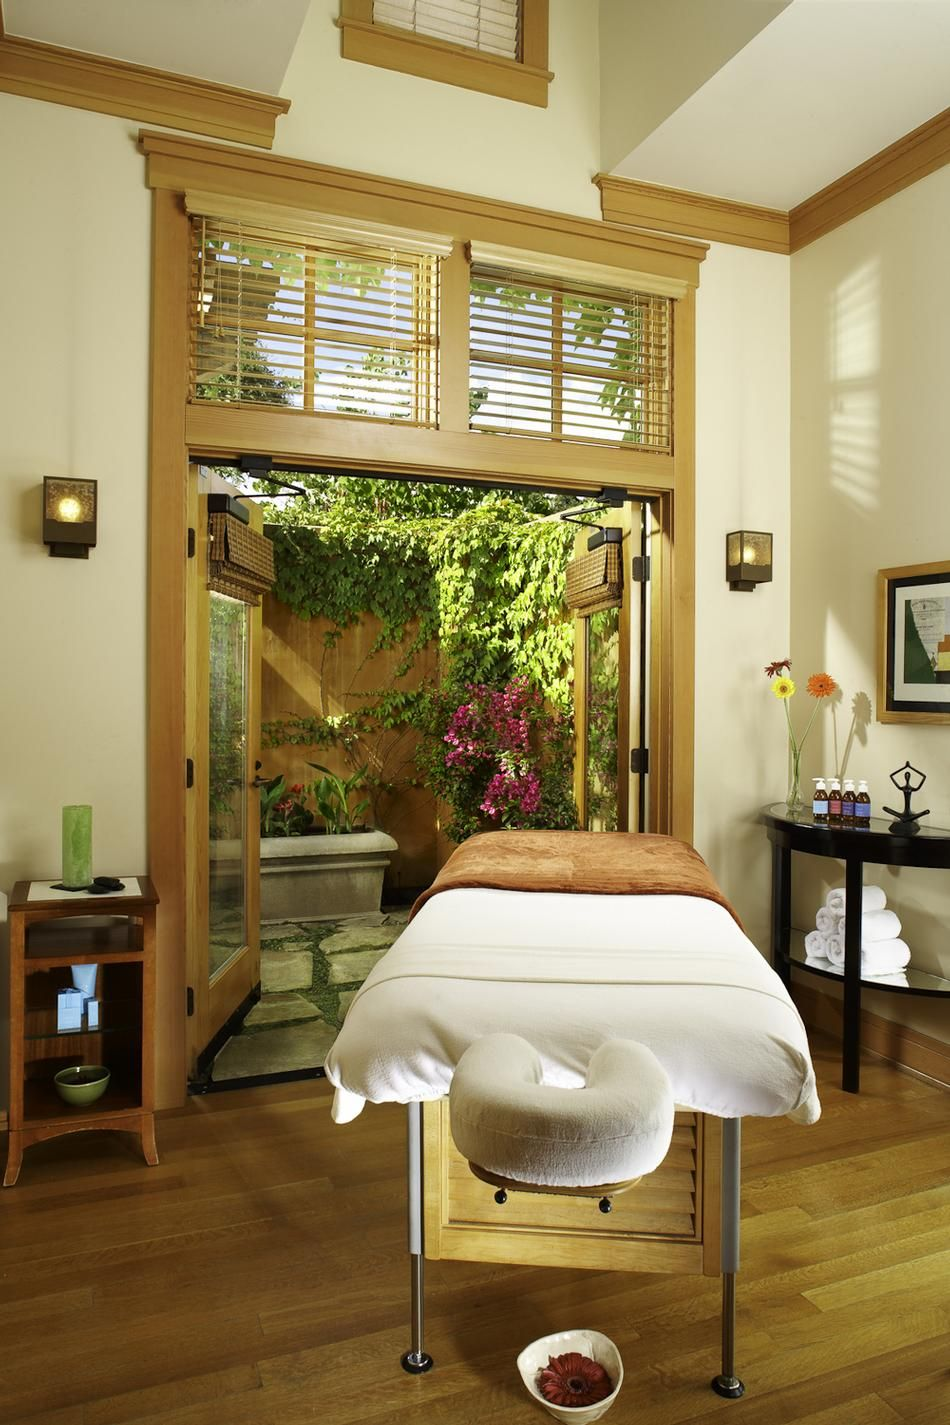 Day Spa  Massage Therapy Room  Esthetician Room  Aesthetician Room  Esthetics -7950